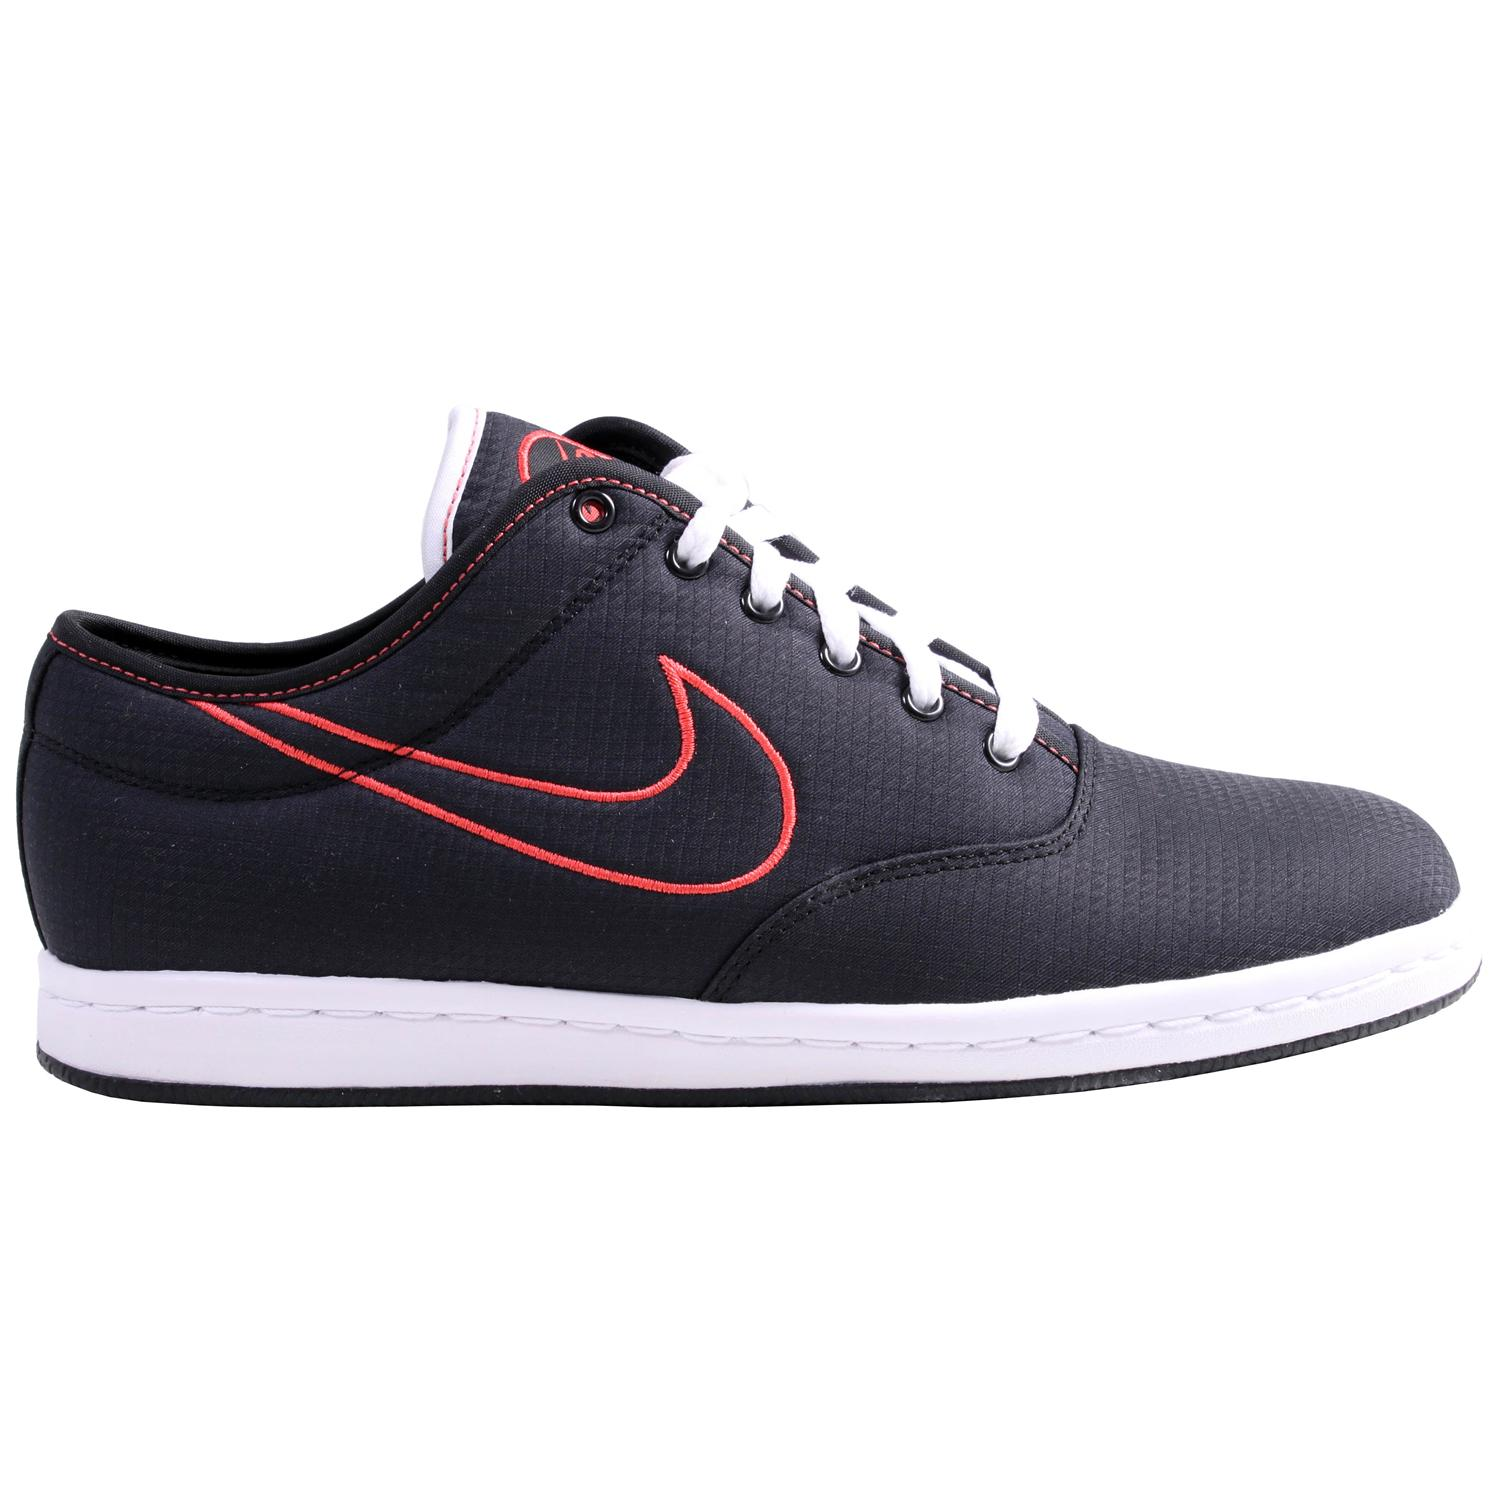 fc36b5aea20a Nike Shoe Outlet For Women Nike Shoes On Sale 50 Off